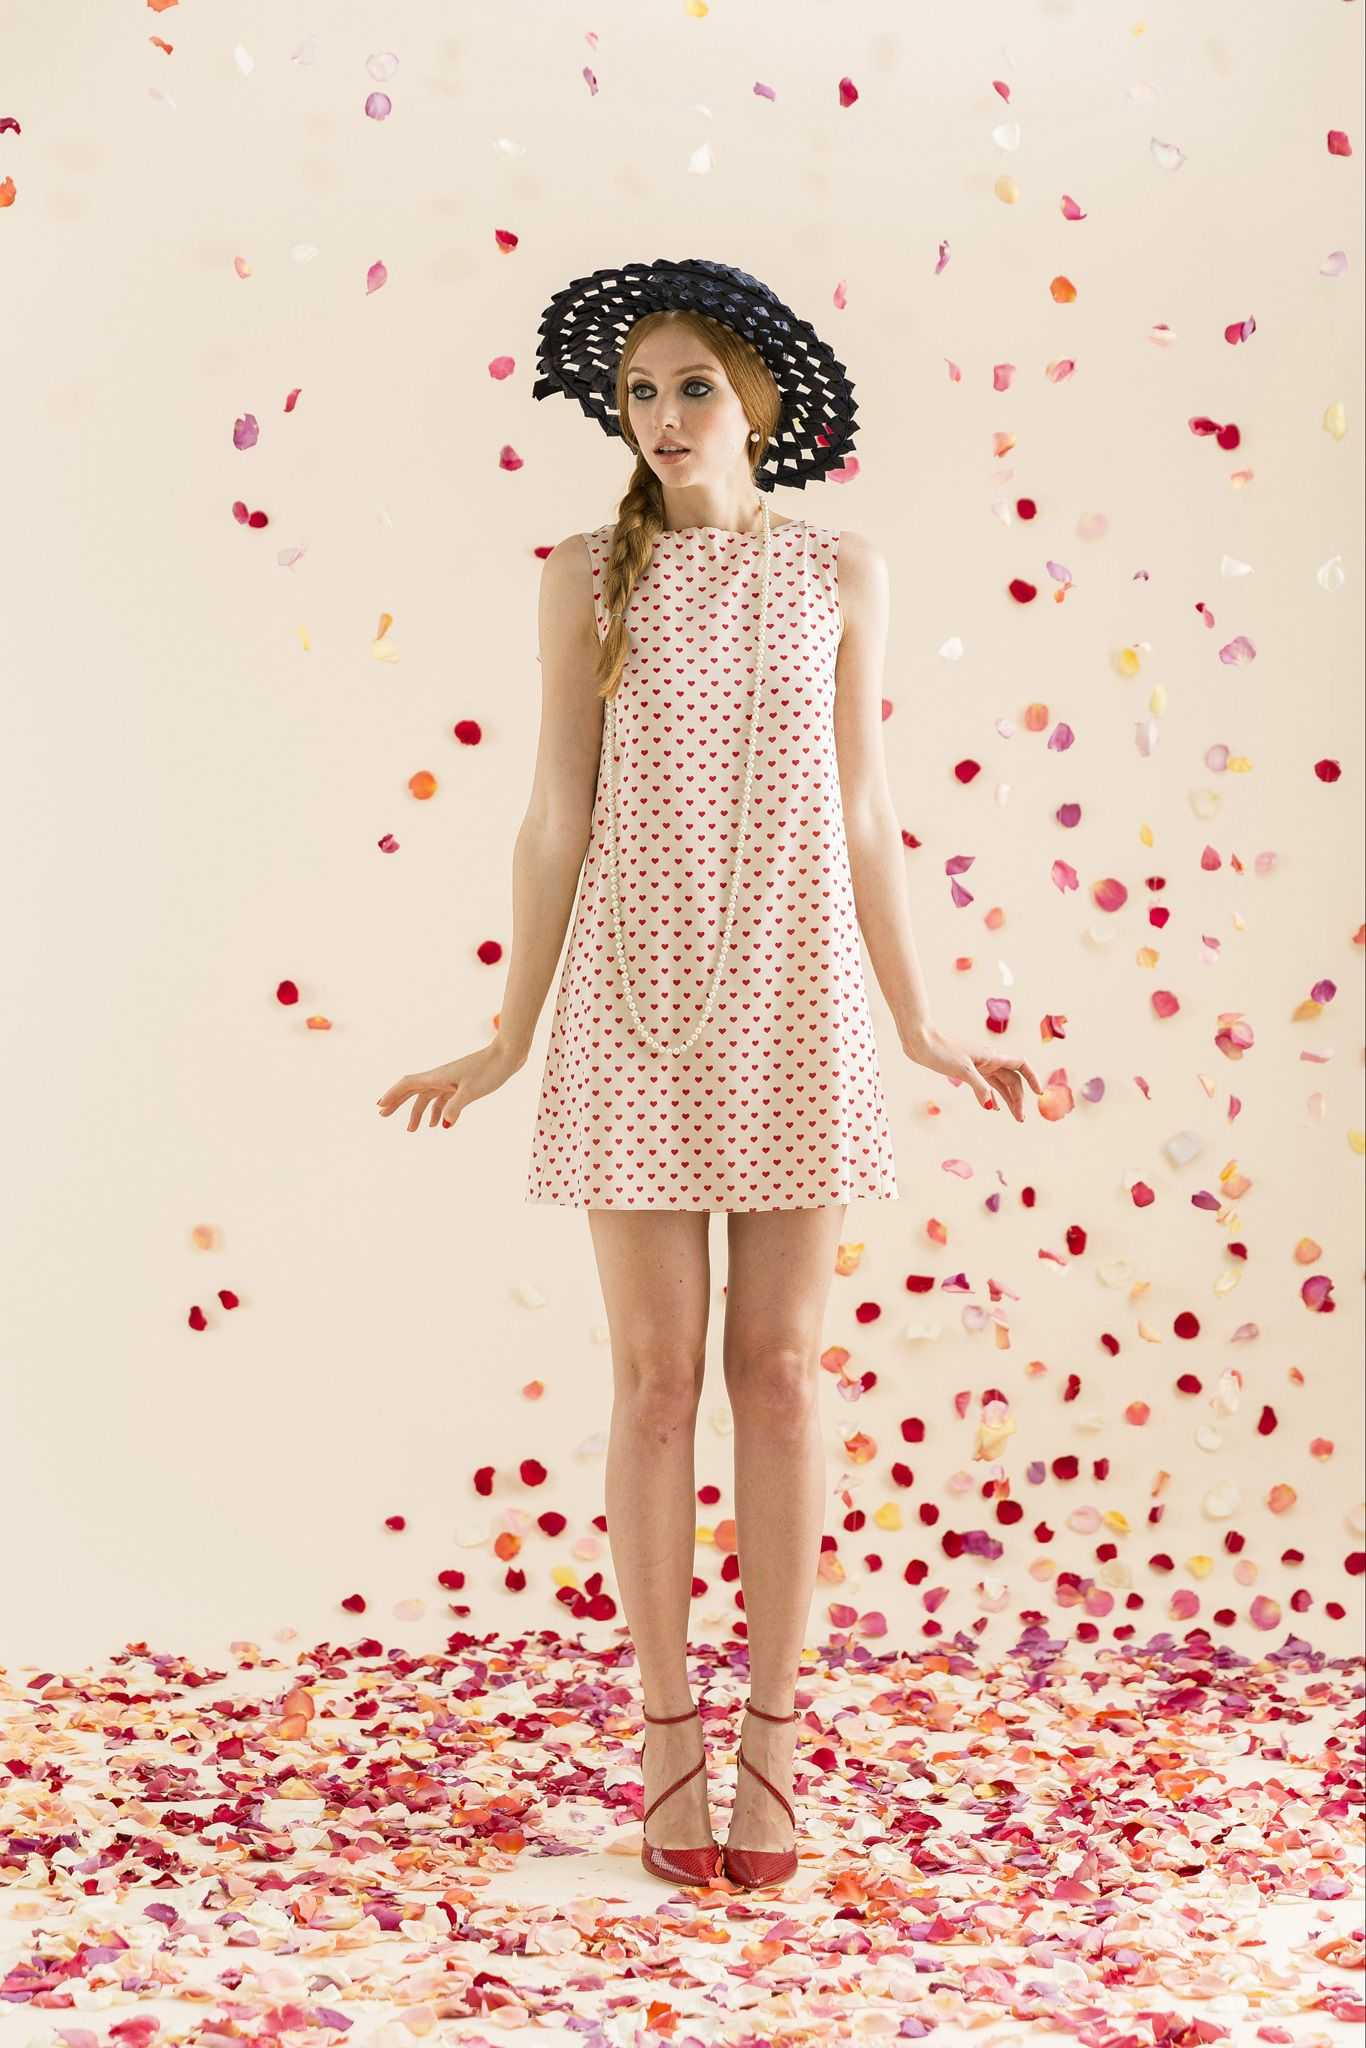 Alice + Olivia Resort 2014 - Collection - Gallery - Look 10 - Style.com